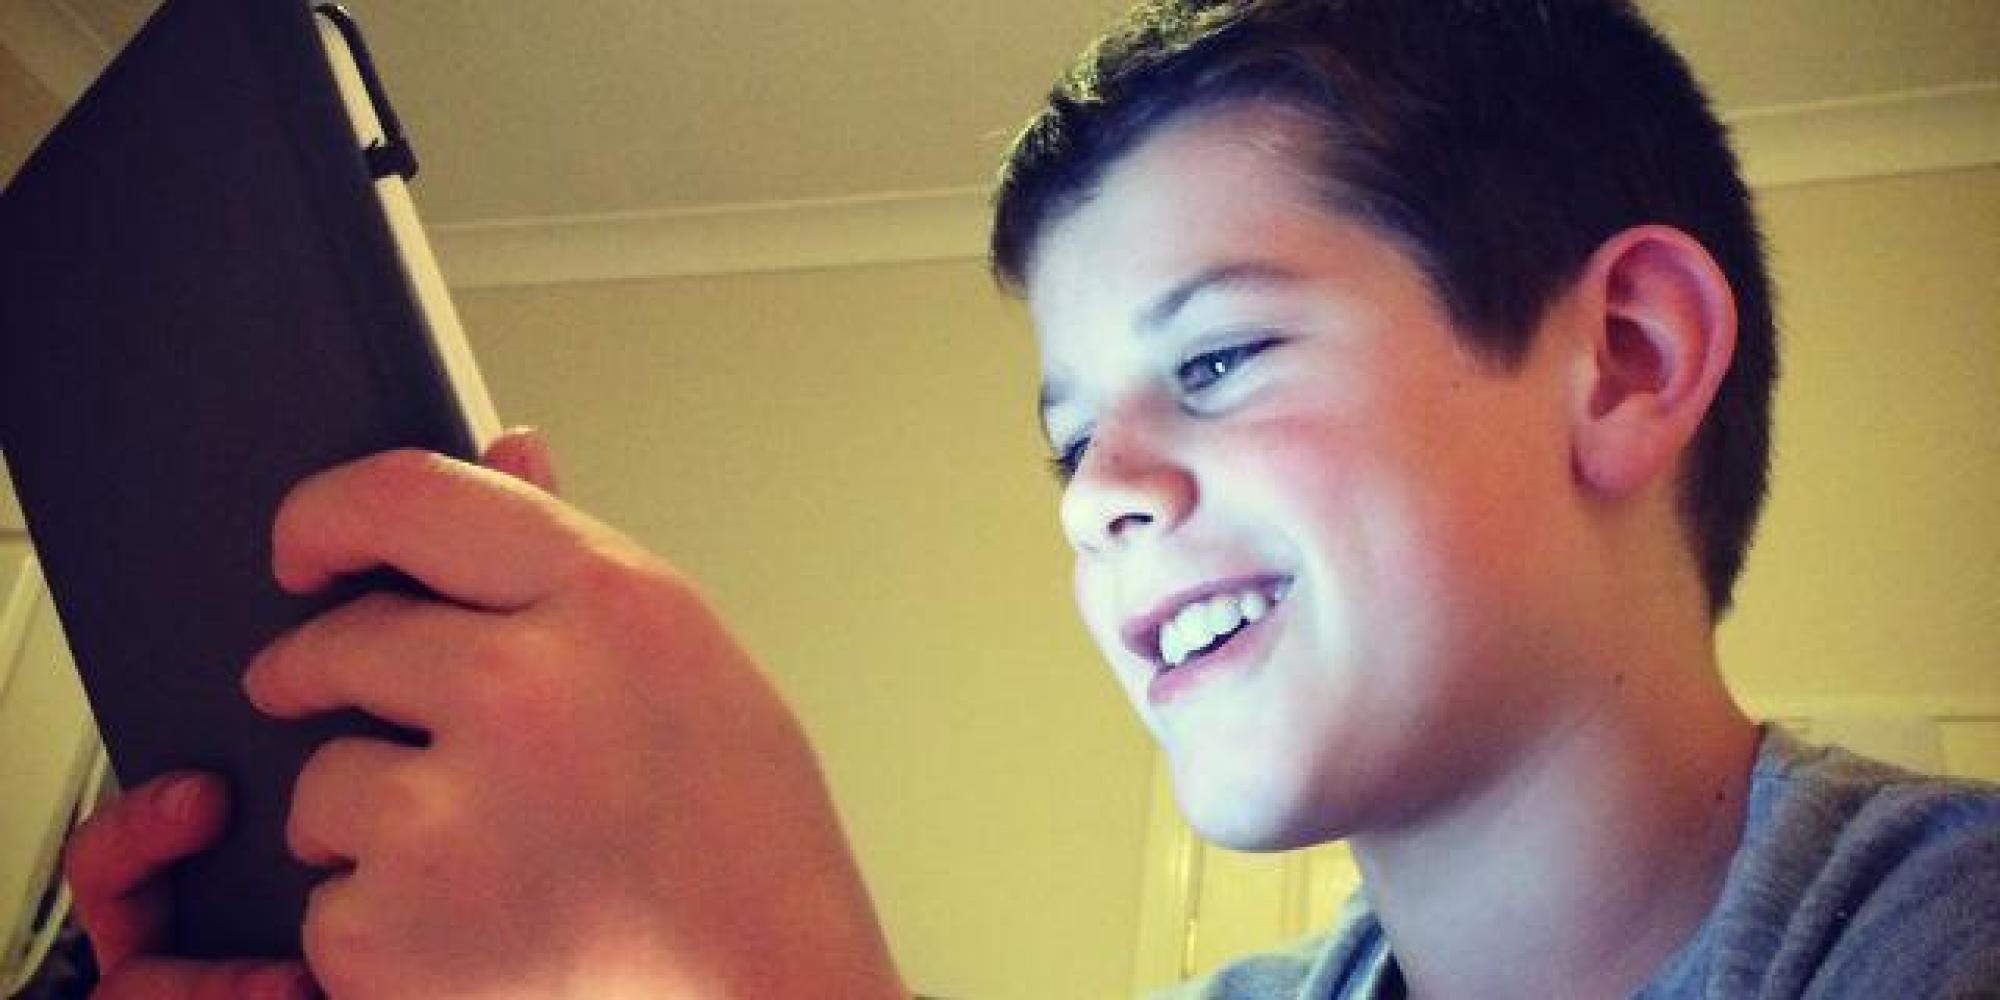 kidgay Orlando Burcham, Australian 11 Year Old, Asks Tony Abbot For Gay Marriage  For His Moms | HuffPost